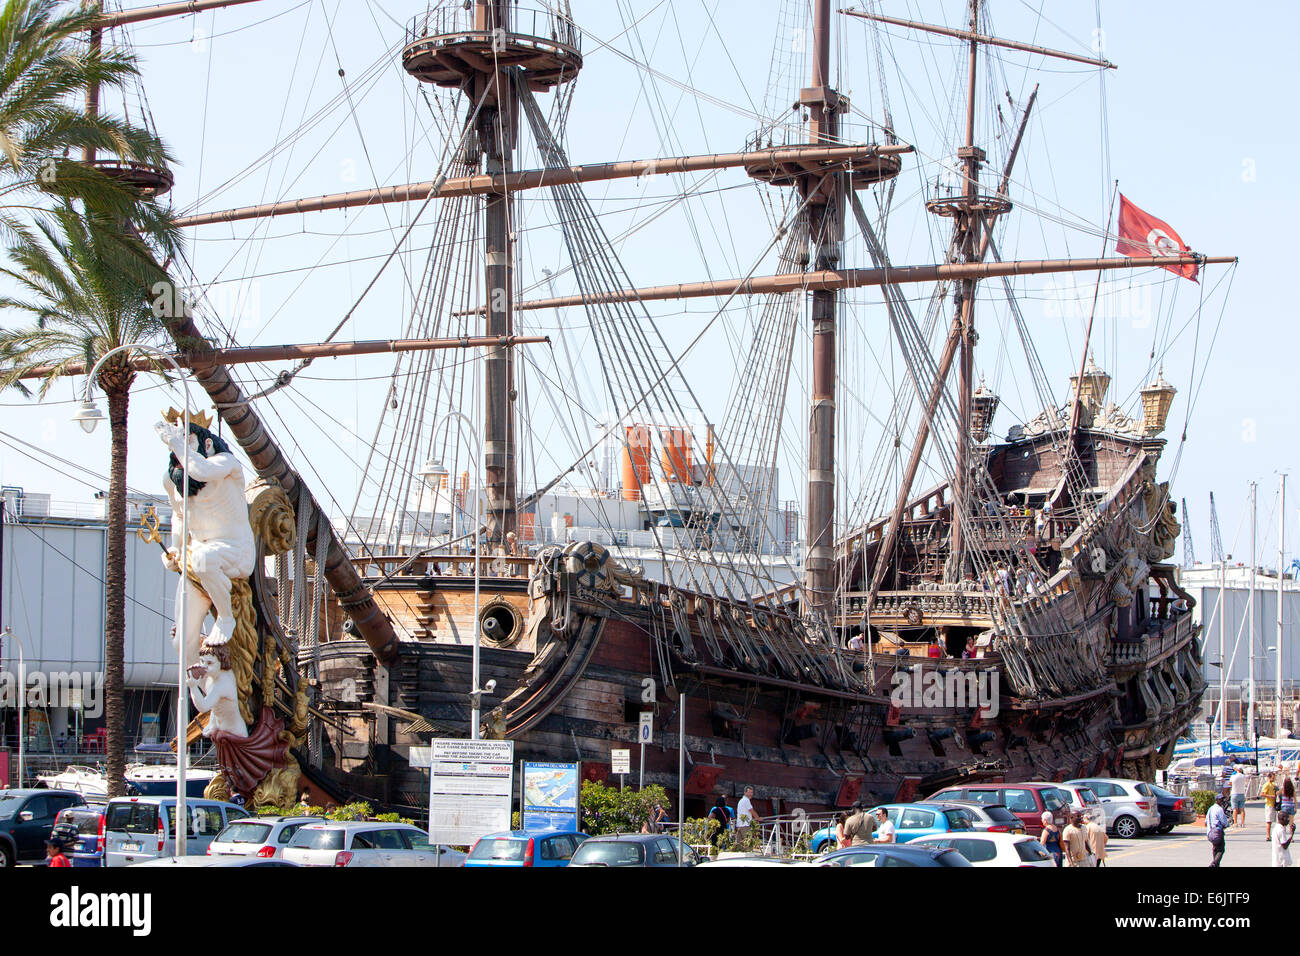 Pirate Ship Genoa the historical port city in northern ...